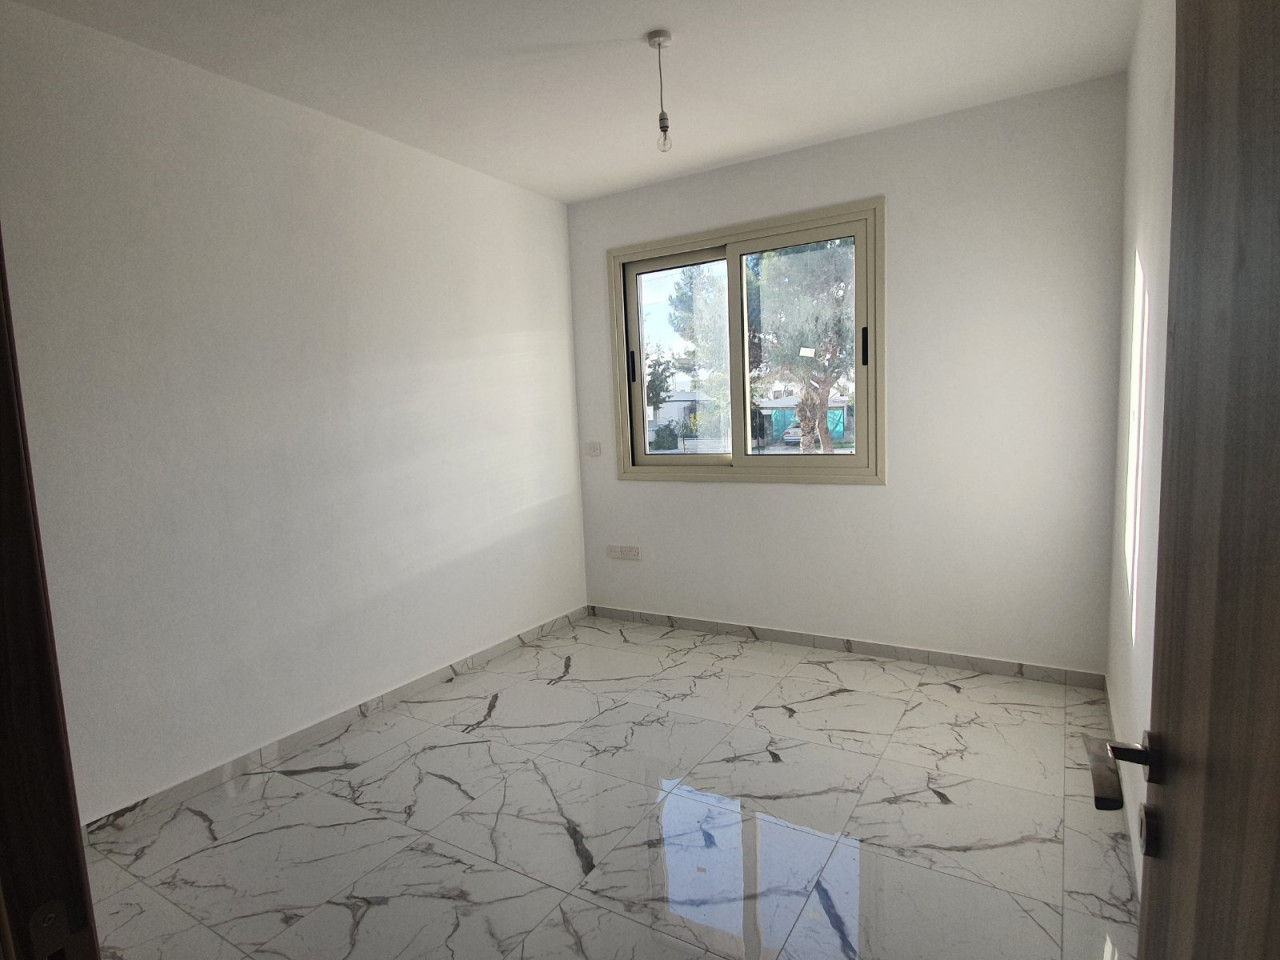 Apartment (Flat) in Geroskipou, Paphos for Rent  2 Bedrooms.....